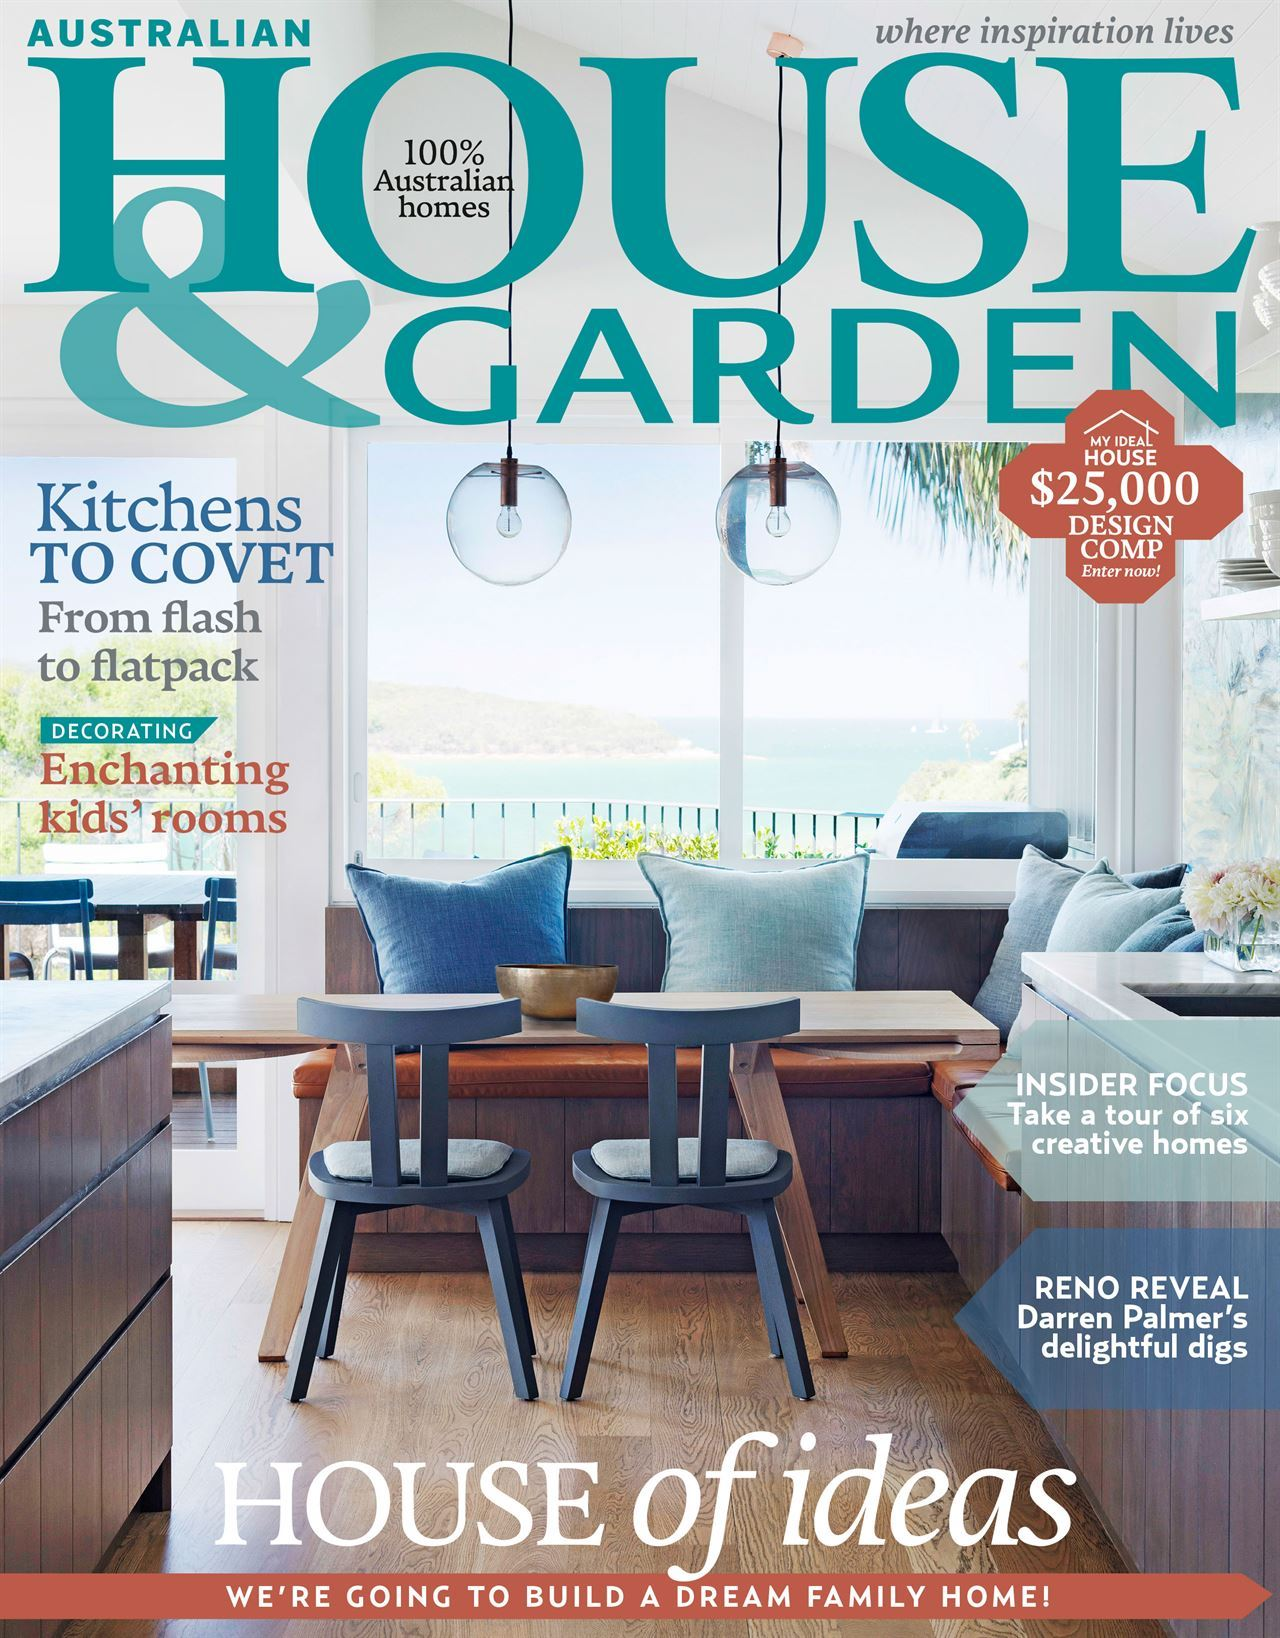 Australian House Garden Magazine Are Once Again Partnering With Ian Barker Gardens To Produce The